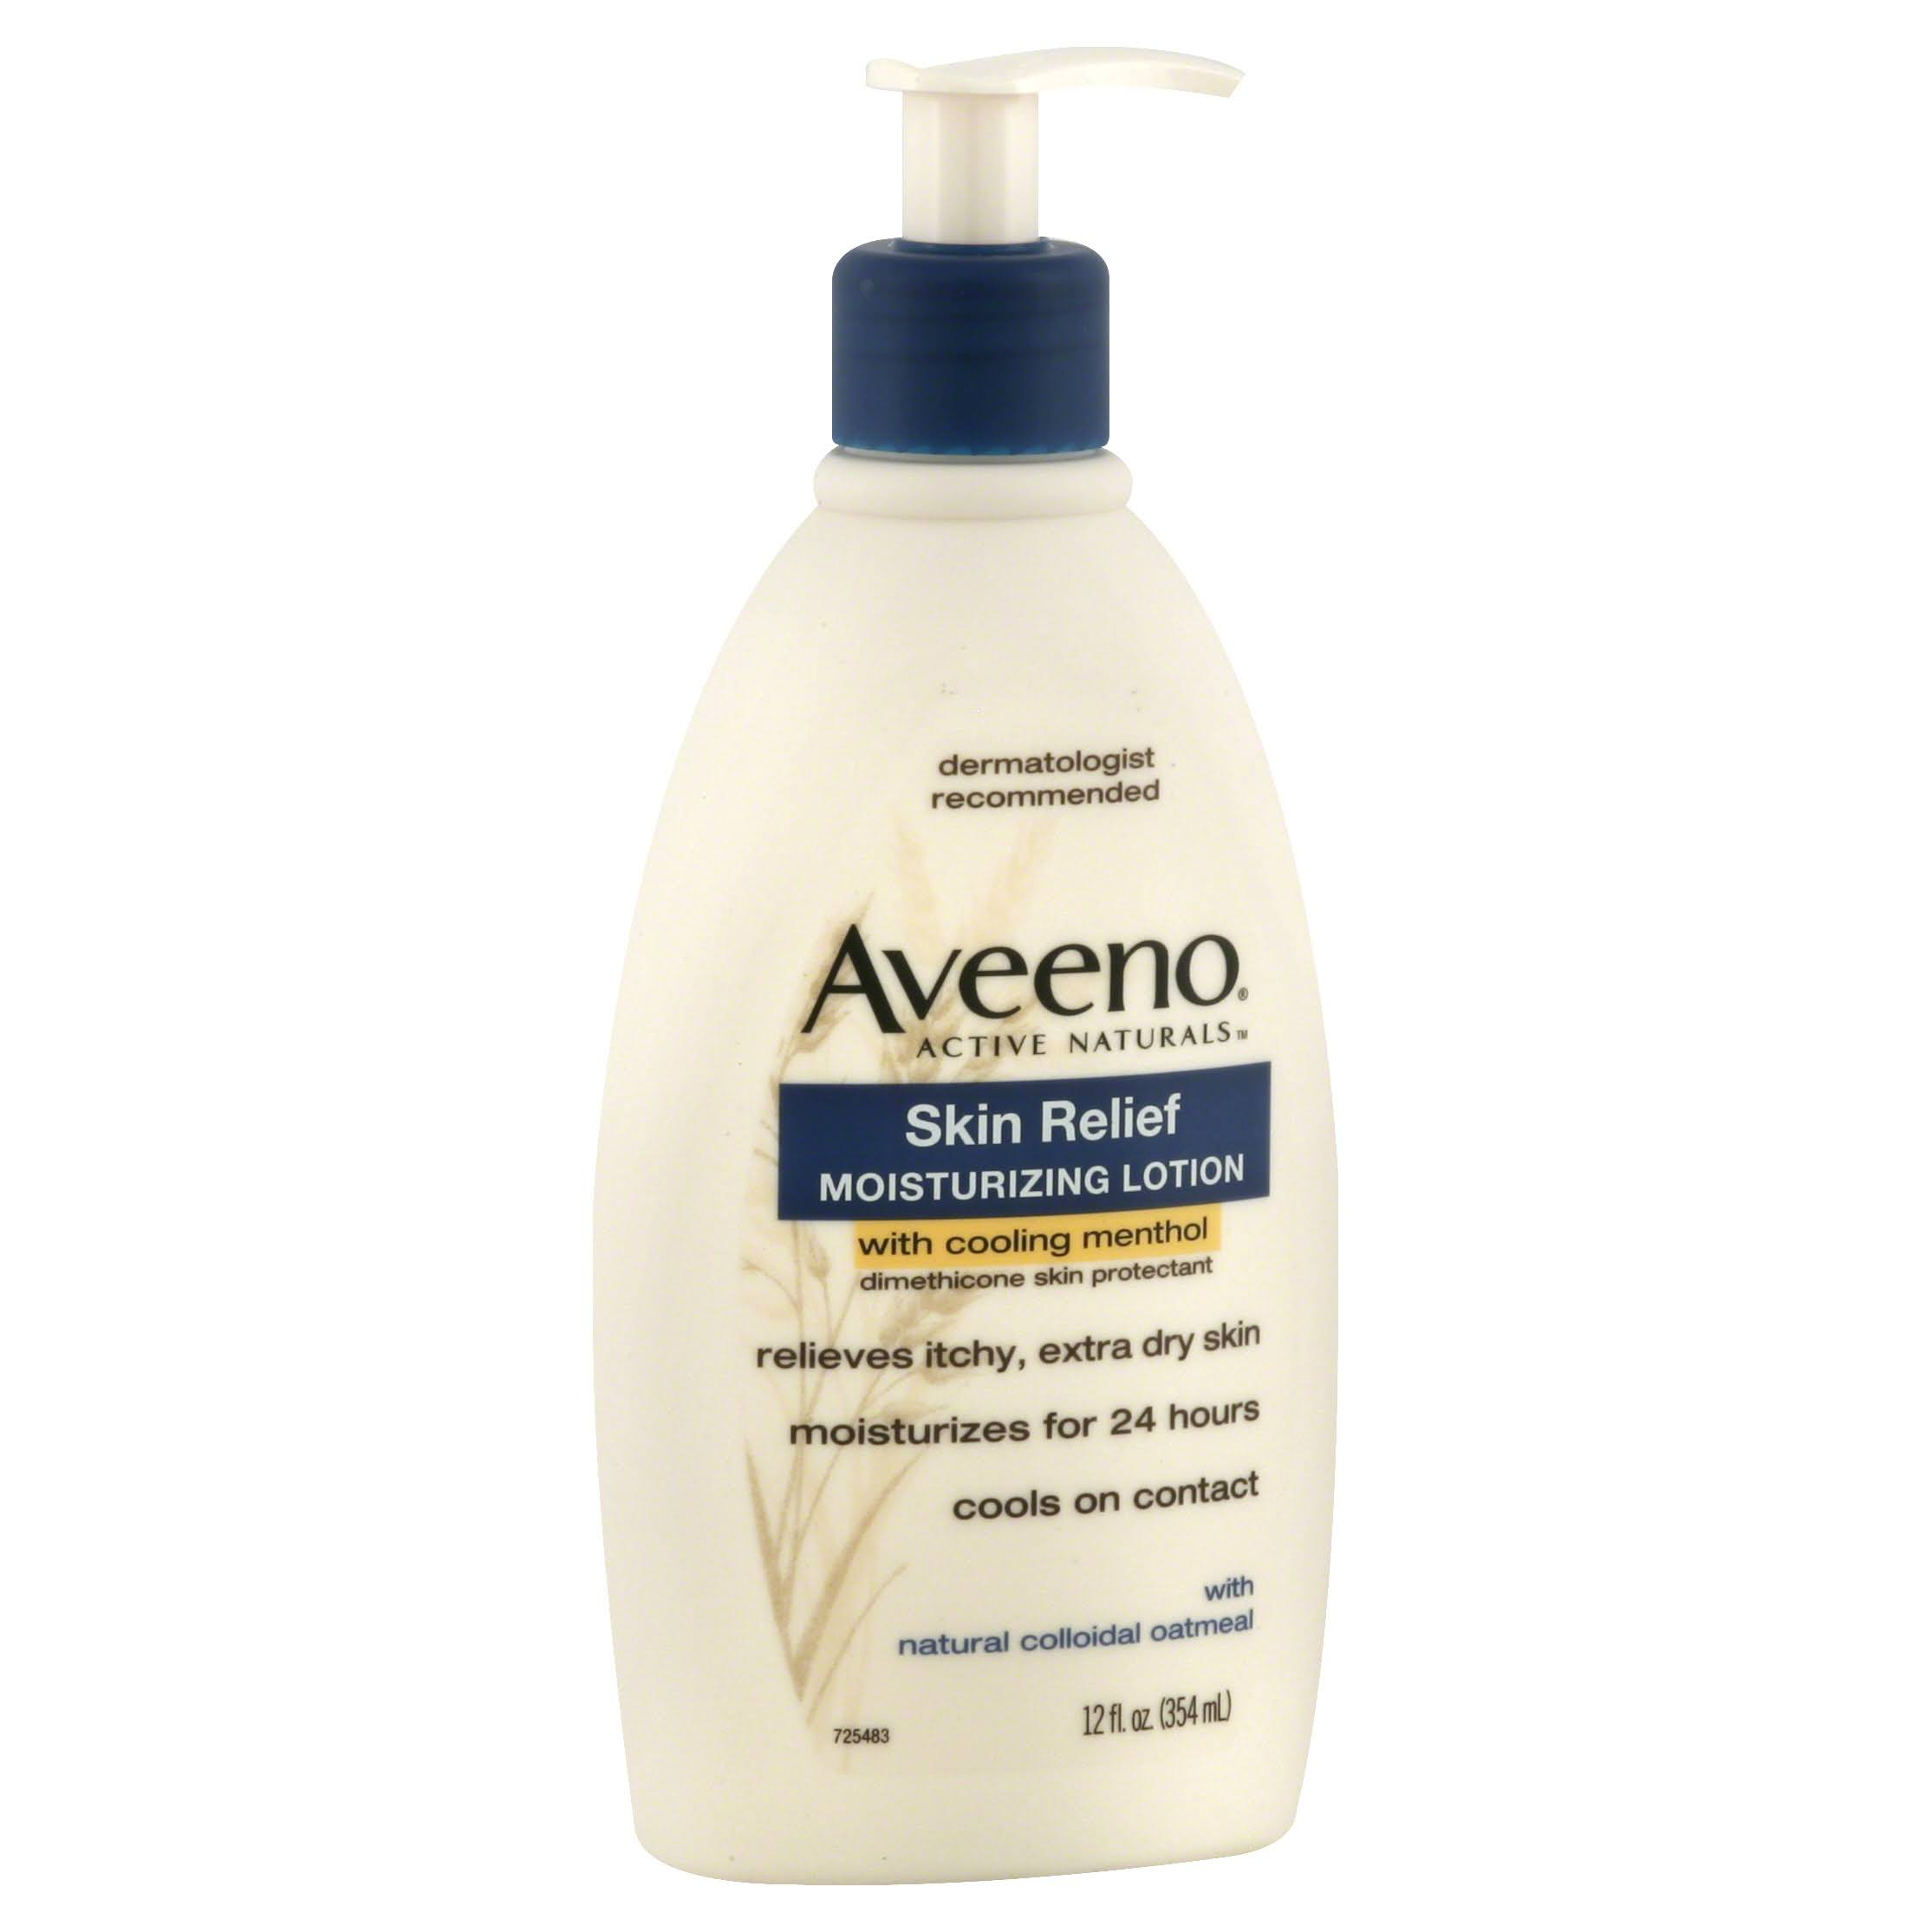 Aveeno Active Naturals Skin Relief Moisturizing Lotion - 12oz